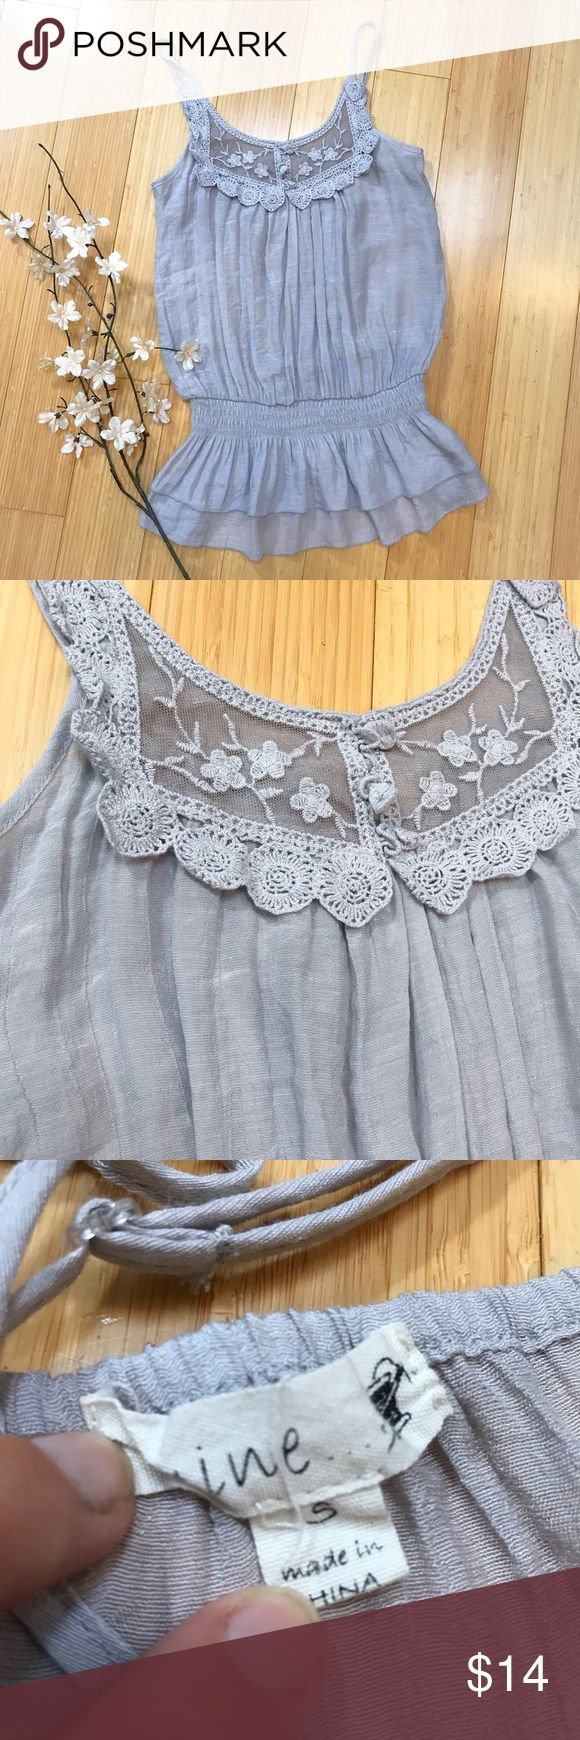 MINE gray tank top, S. Lightweight silver gray tank top by Mine, size small. Washer dryer safe, material is a combination of cotton and rayon. Cute embellishment, smocked waist, adjustable straps. Bust measures 20 inches across, length is 25 inches. Good condition. Mine Tops Tank Tops